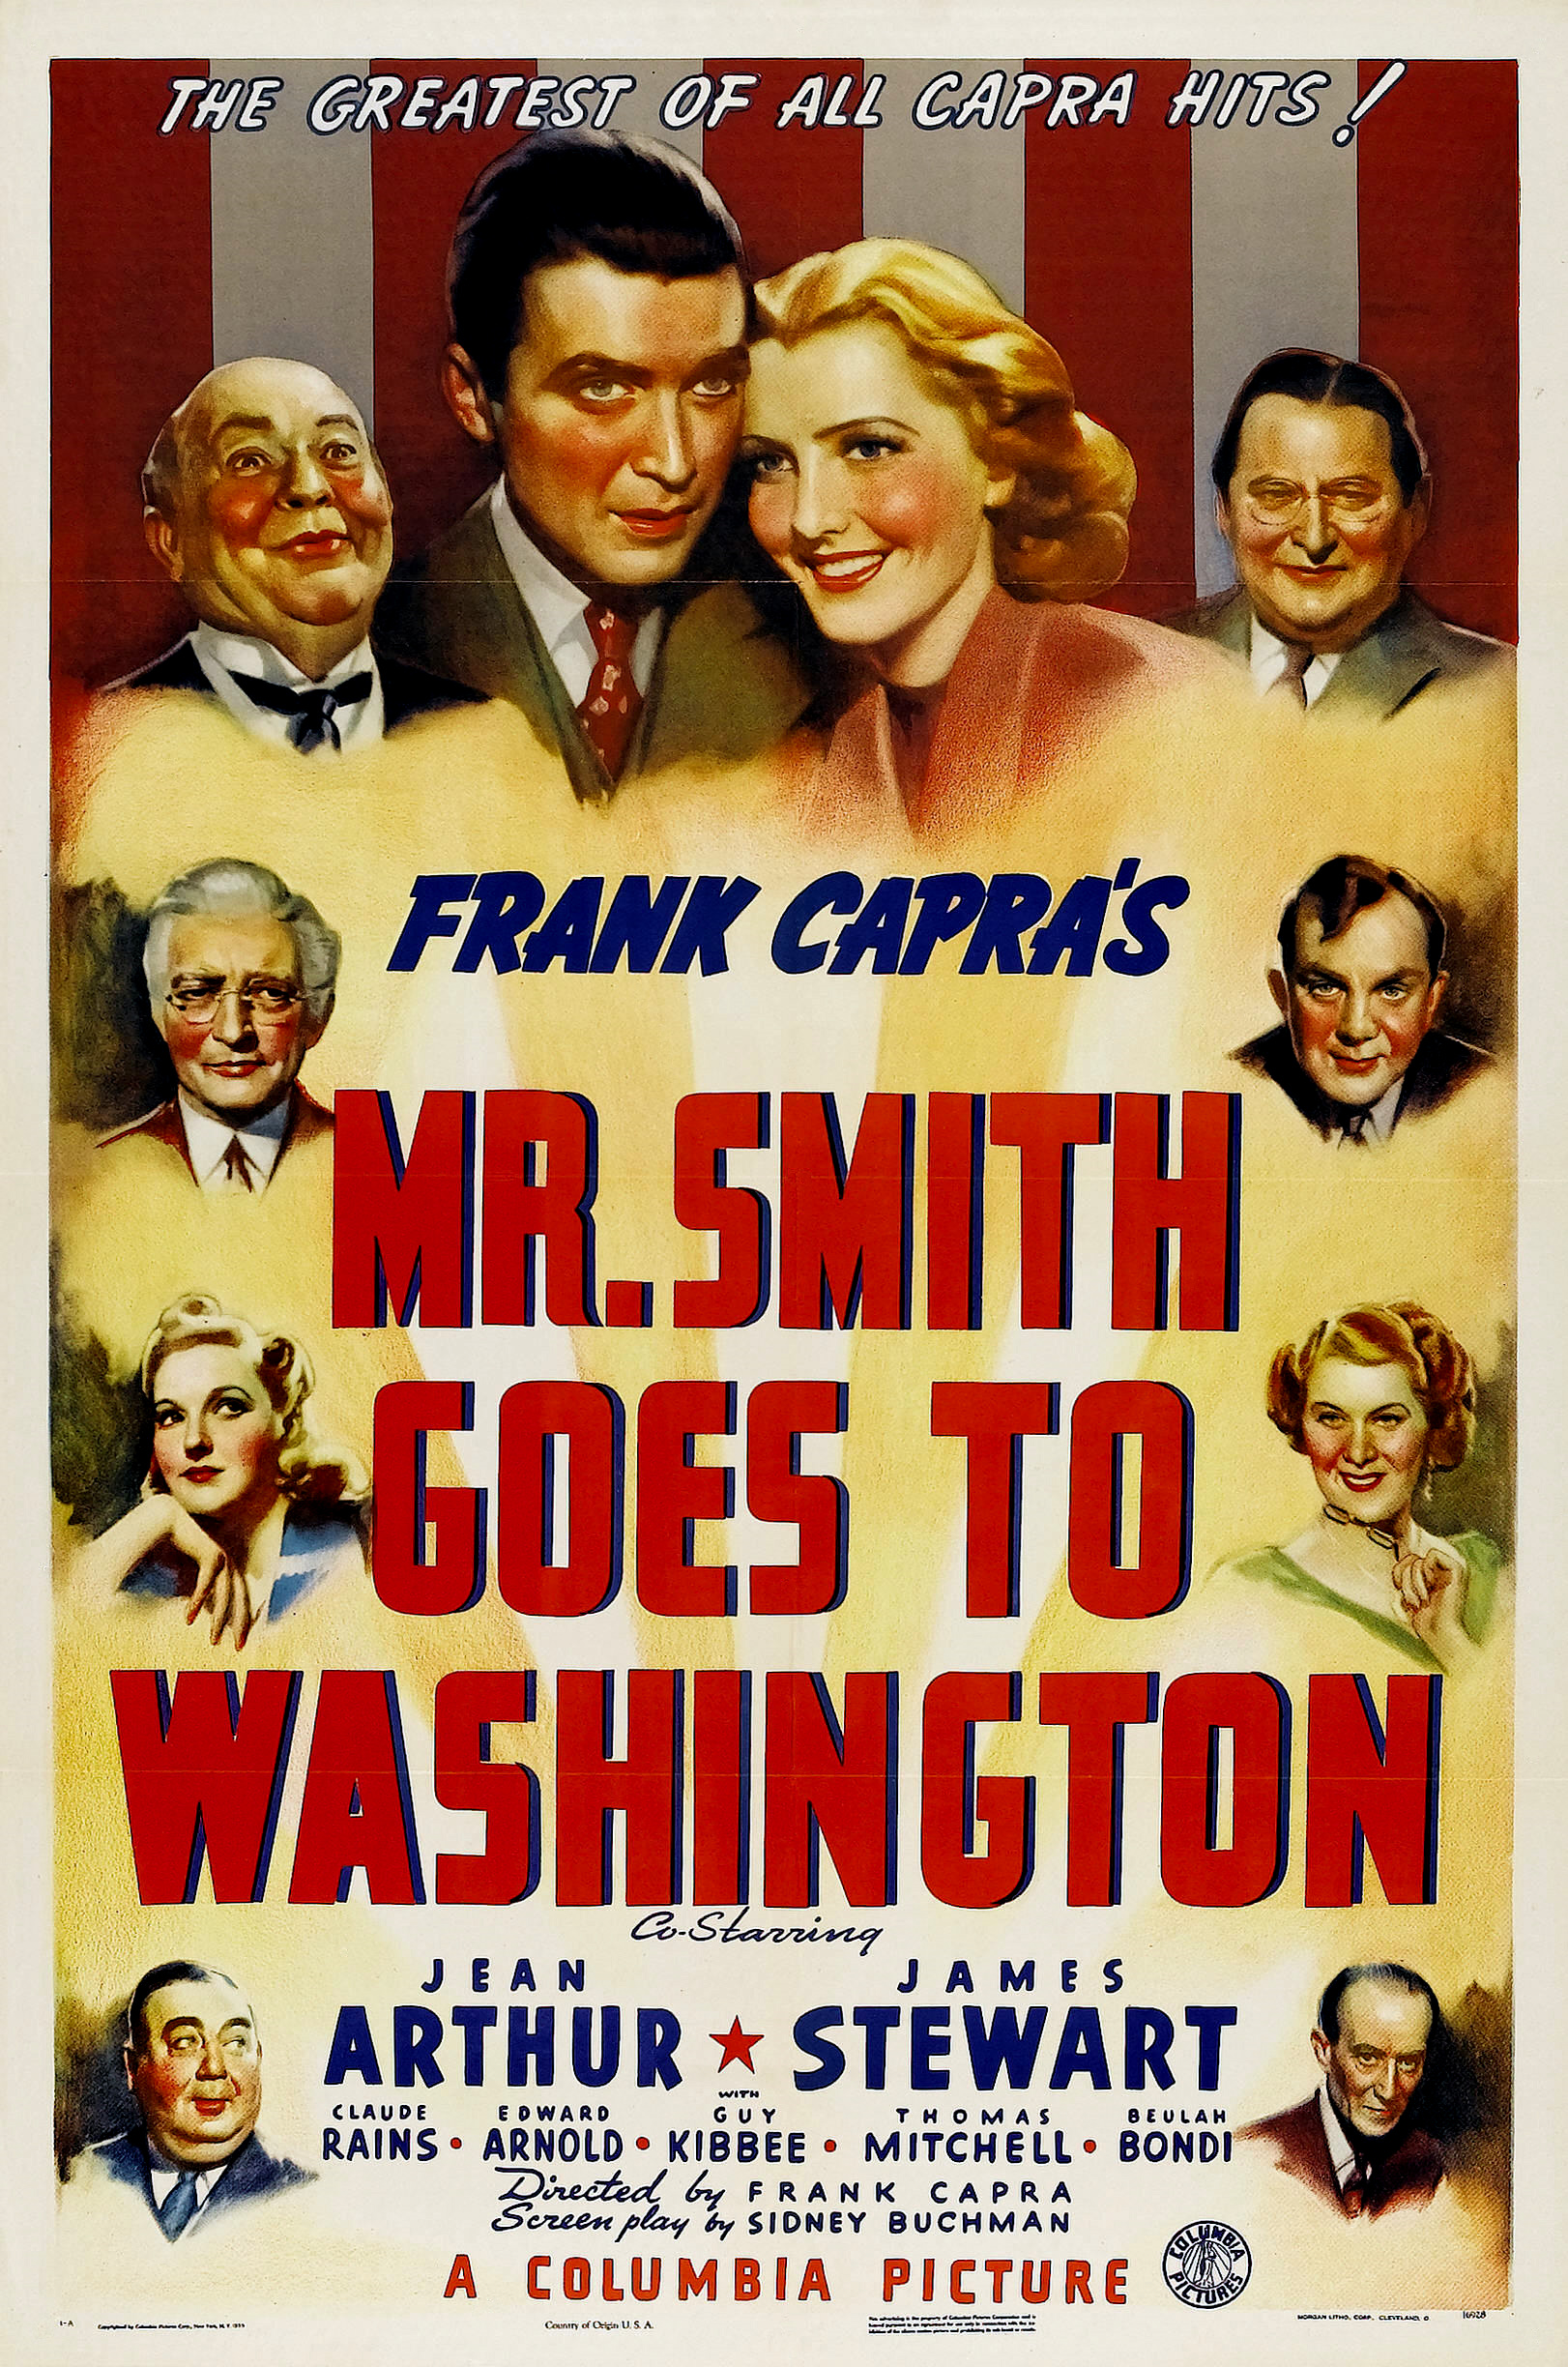 http://www.reellifewithjane.com/wp-content/uploads/2014/06/Mr-Smith-Goes-to-Washington-Poster-2.jpg